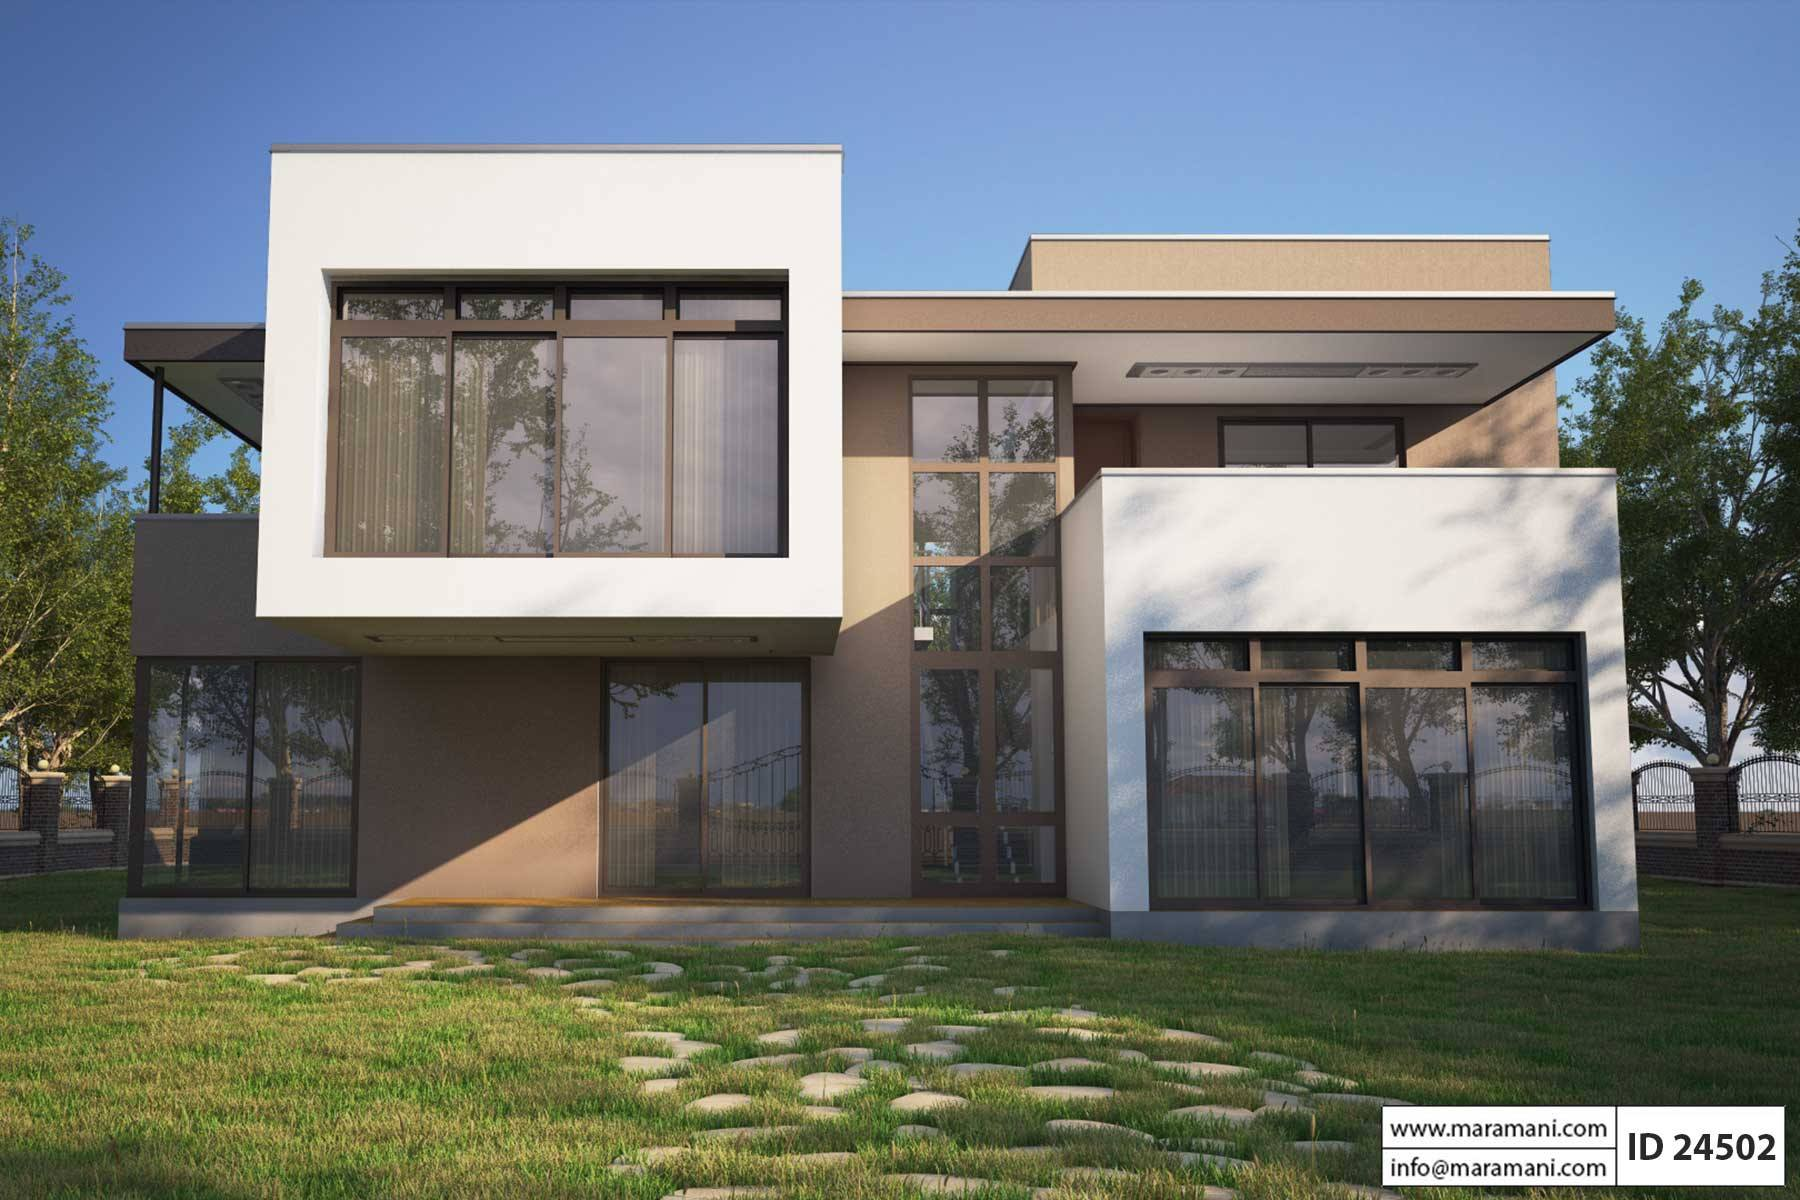 4 bedroom modern house plan id 24502 house plans maramani for Types of houses in kenya